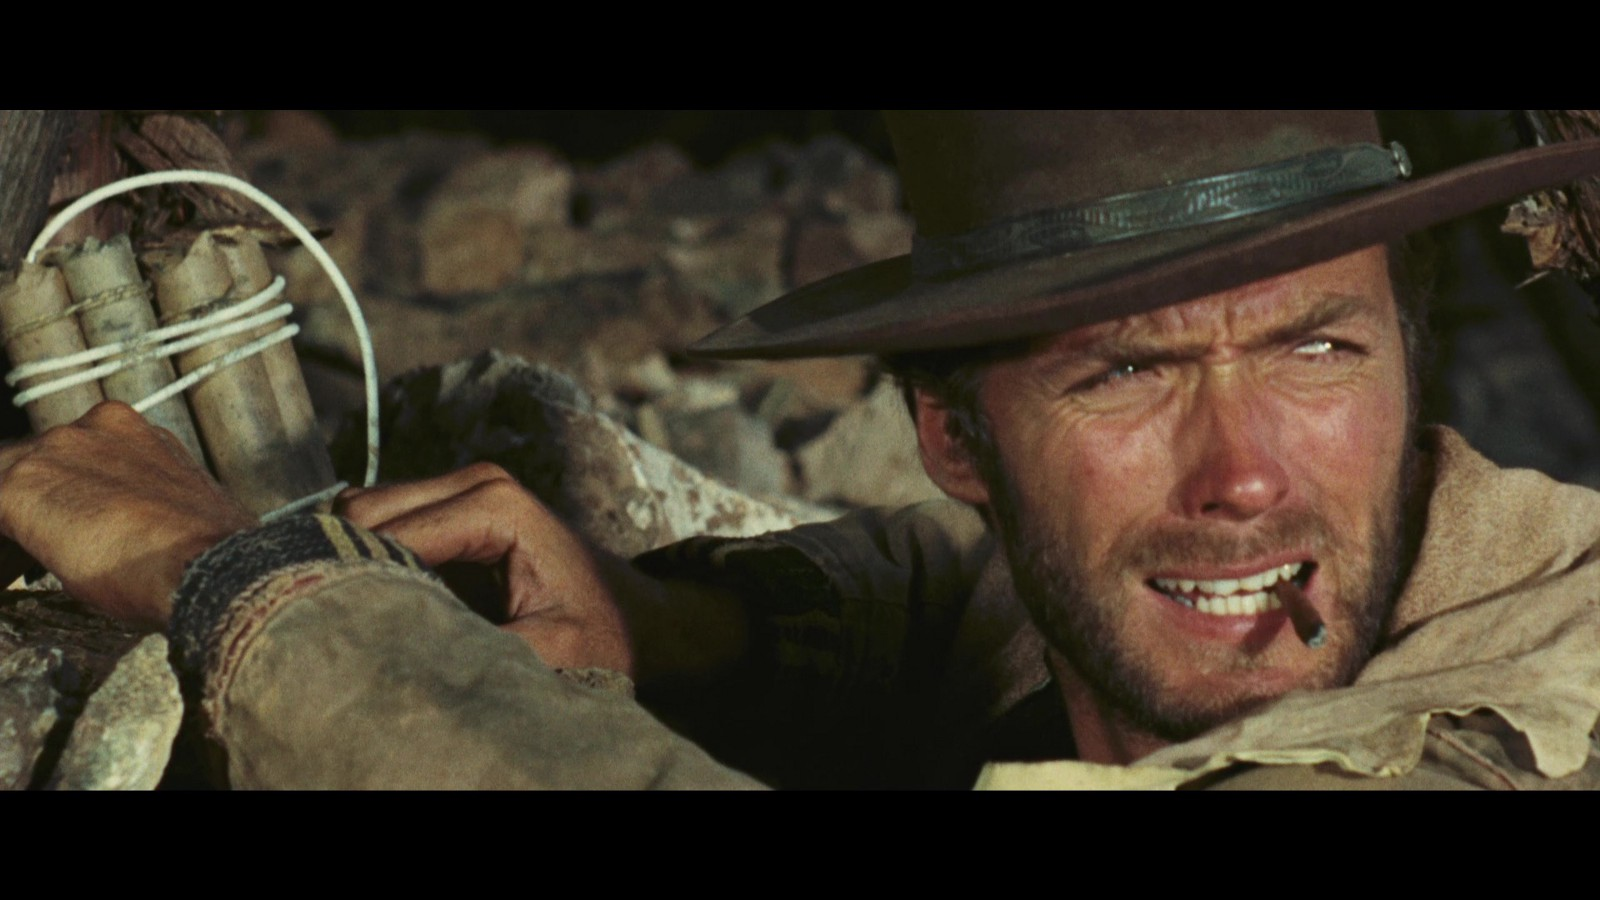 THE GOOD THE BAD AND THE UGLY (1966) on KL Studio Classics Blu-ray